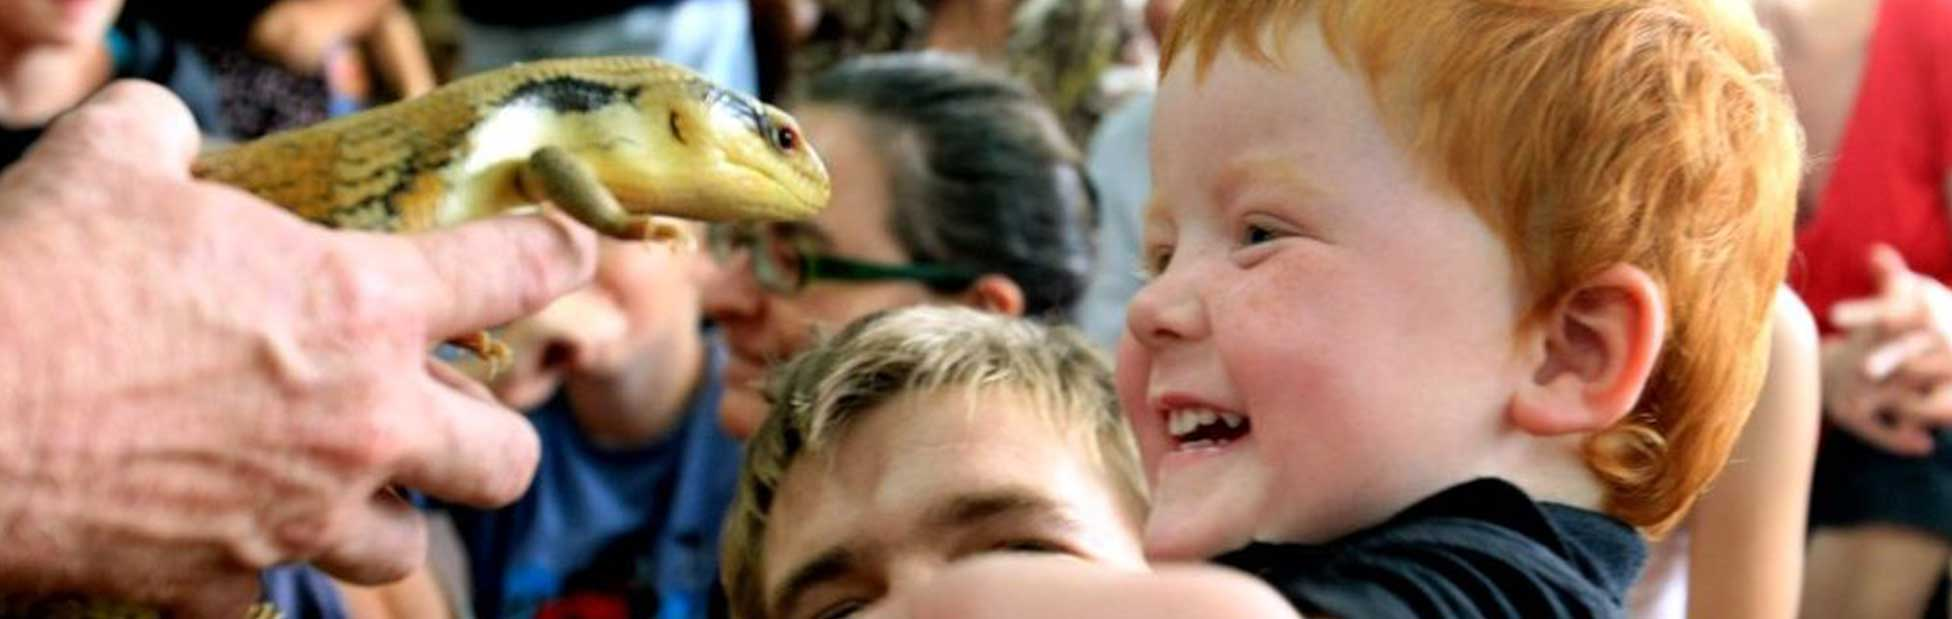 Boy looking at reptile